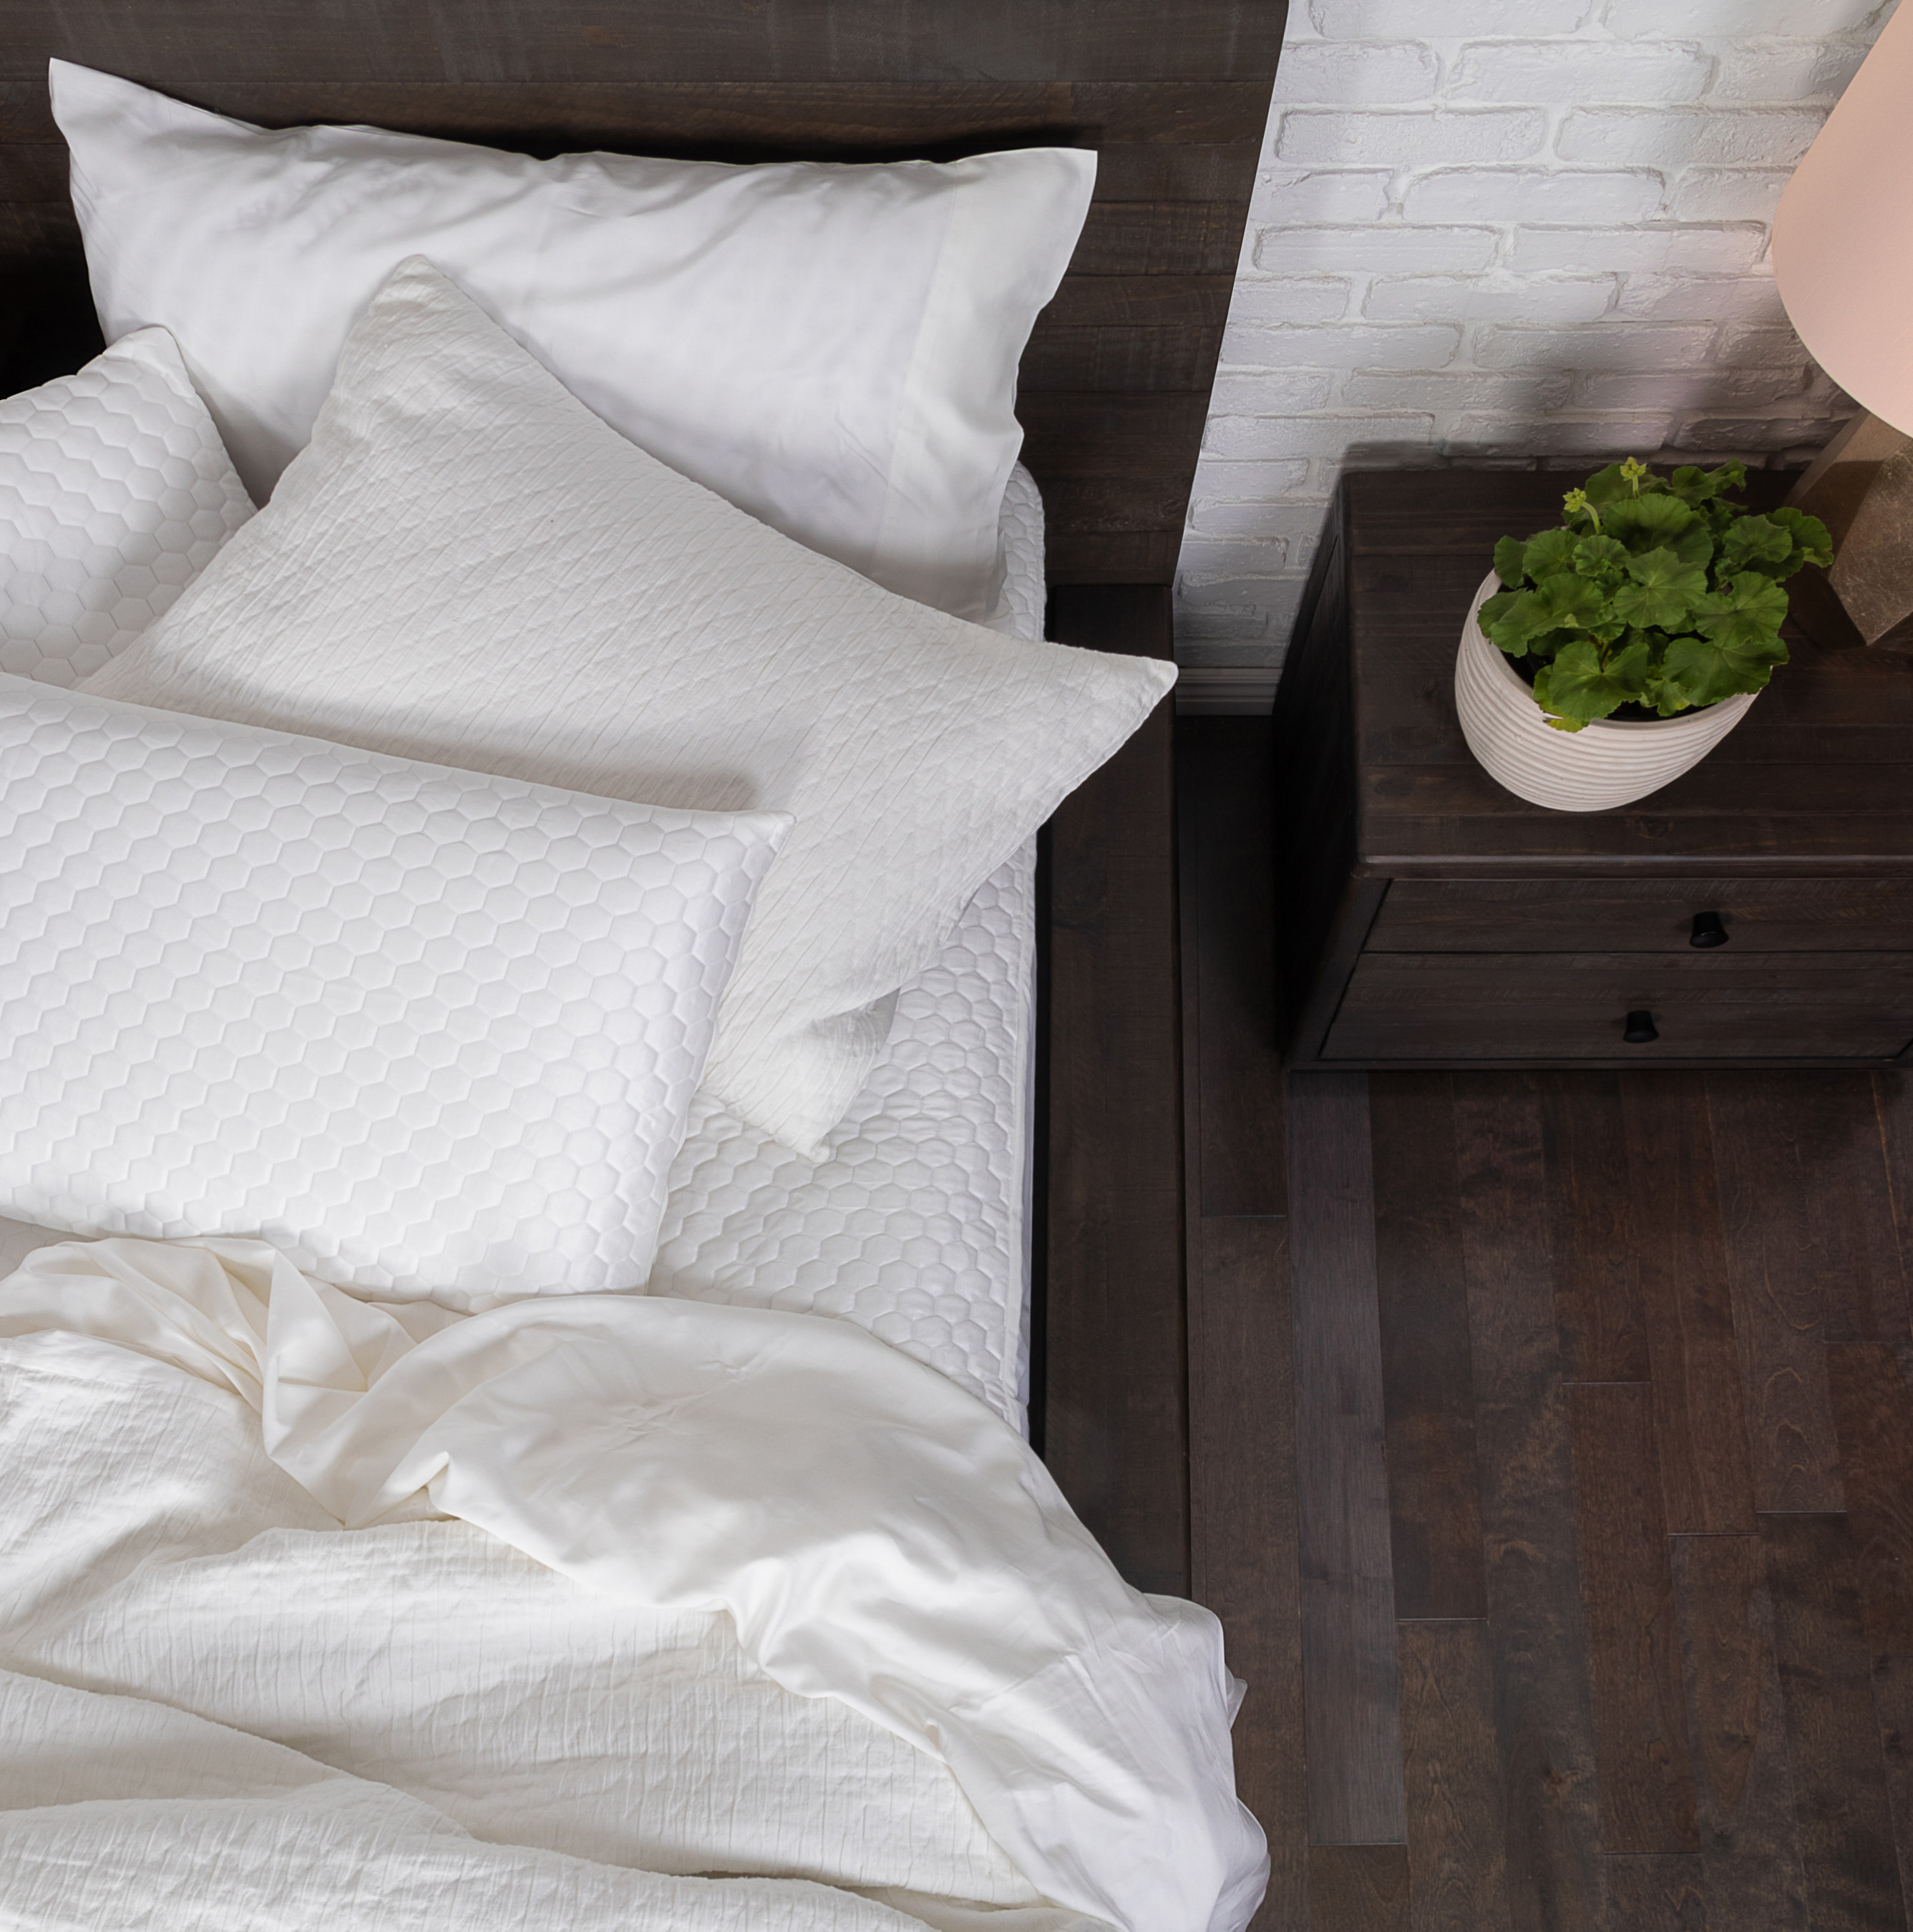 Brooklyn Bedding Unveils New Luxury Cooling Mattress Protector